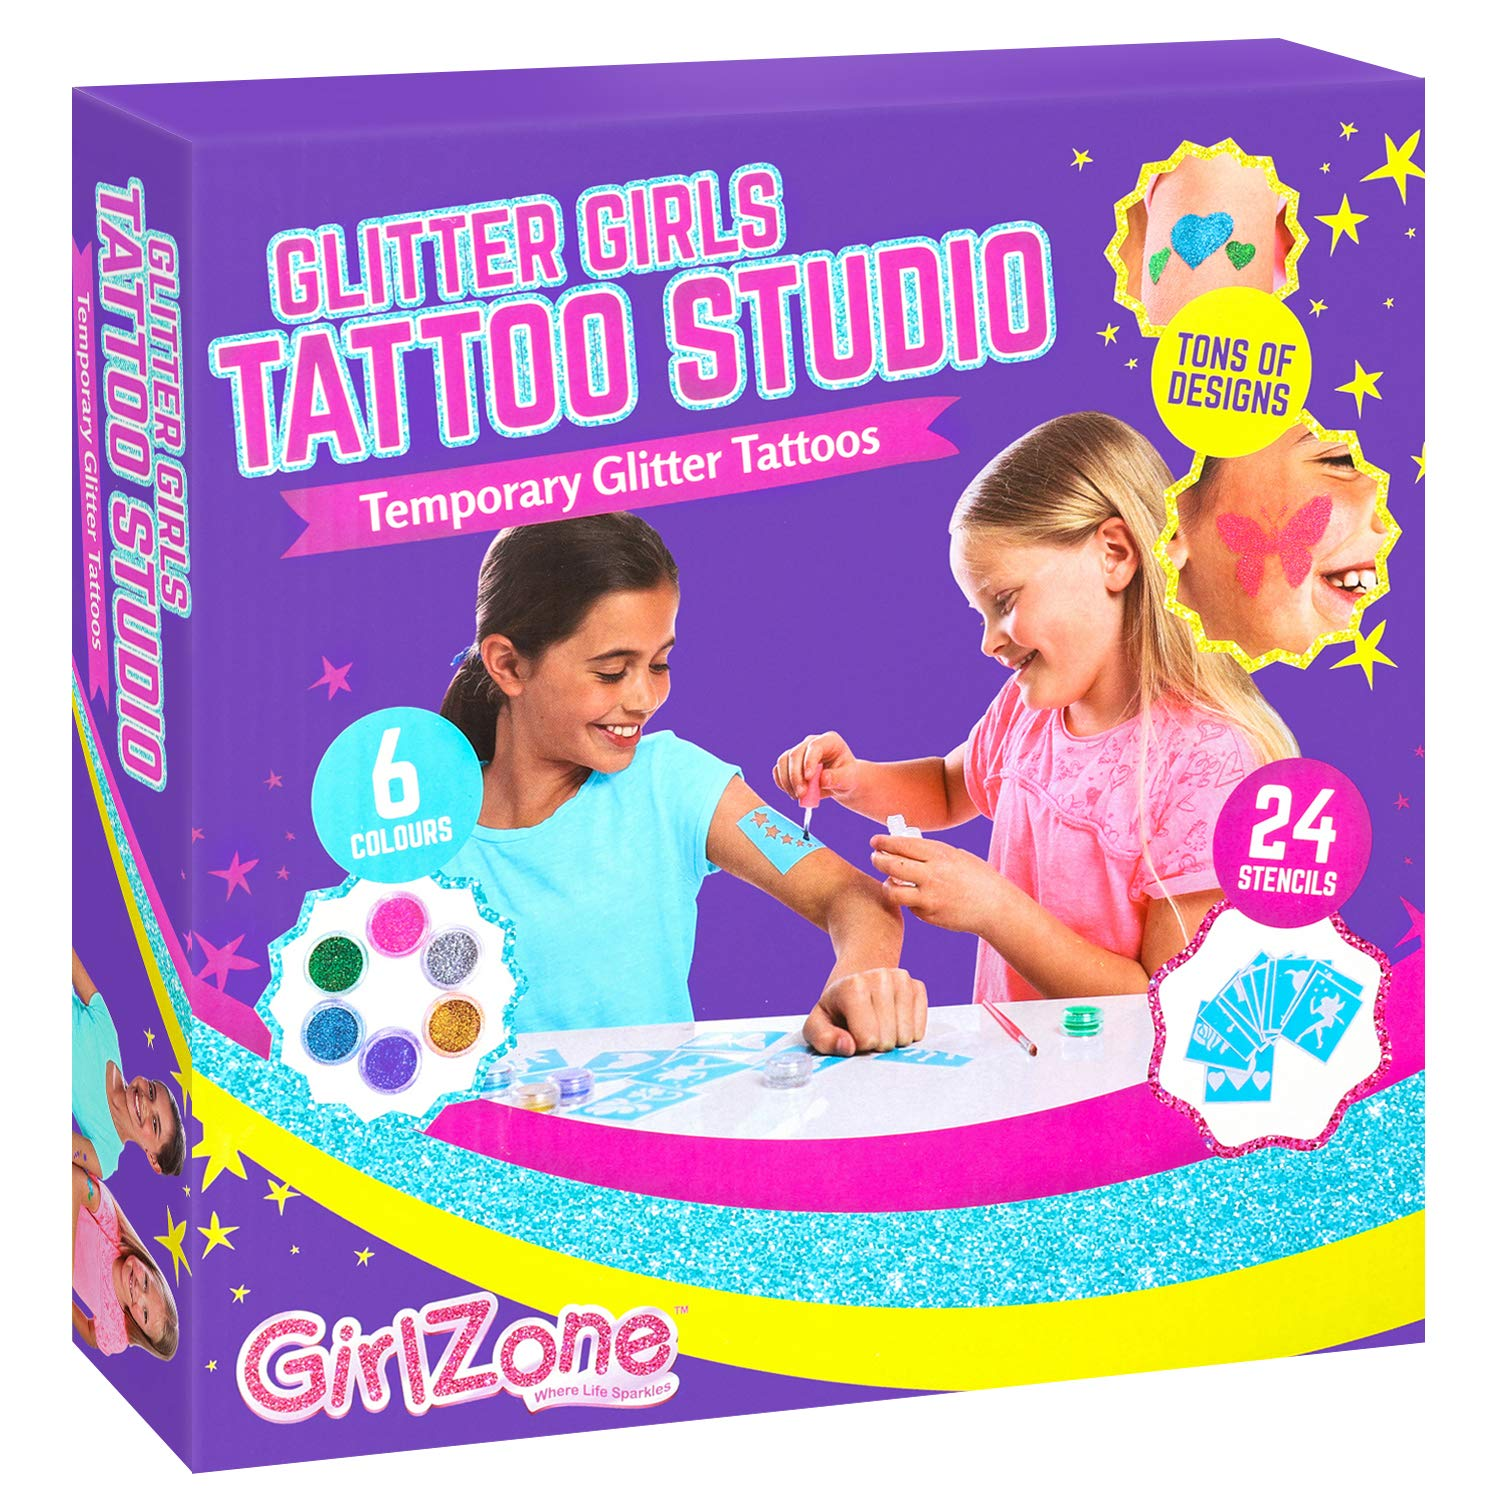 GirlZone Gifts for Girls: Temporary Glitter Tattoos Kit Including 33 Pieces, Best Birthday Present Idea for Girls Age 6 7 8 9+